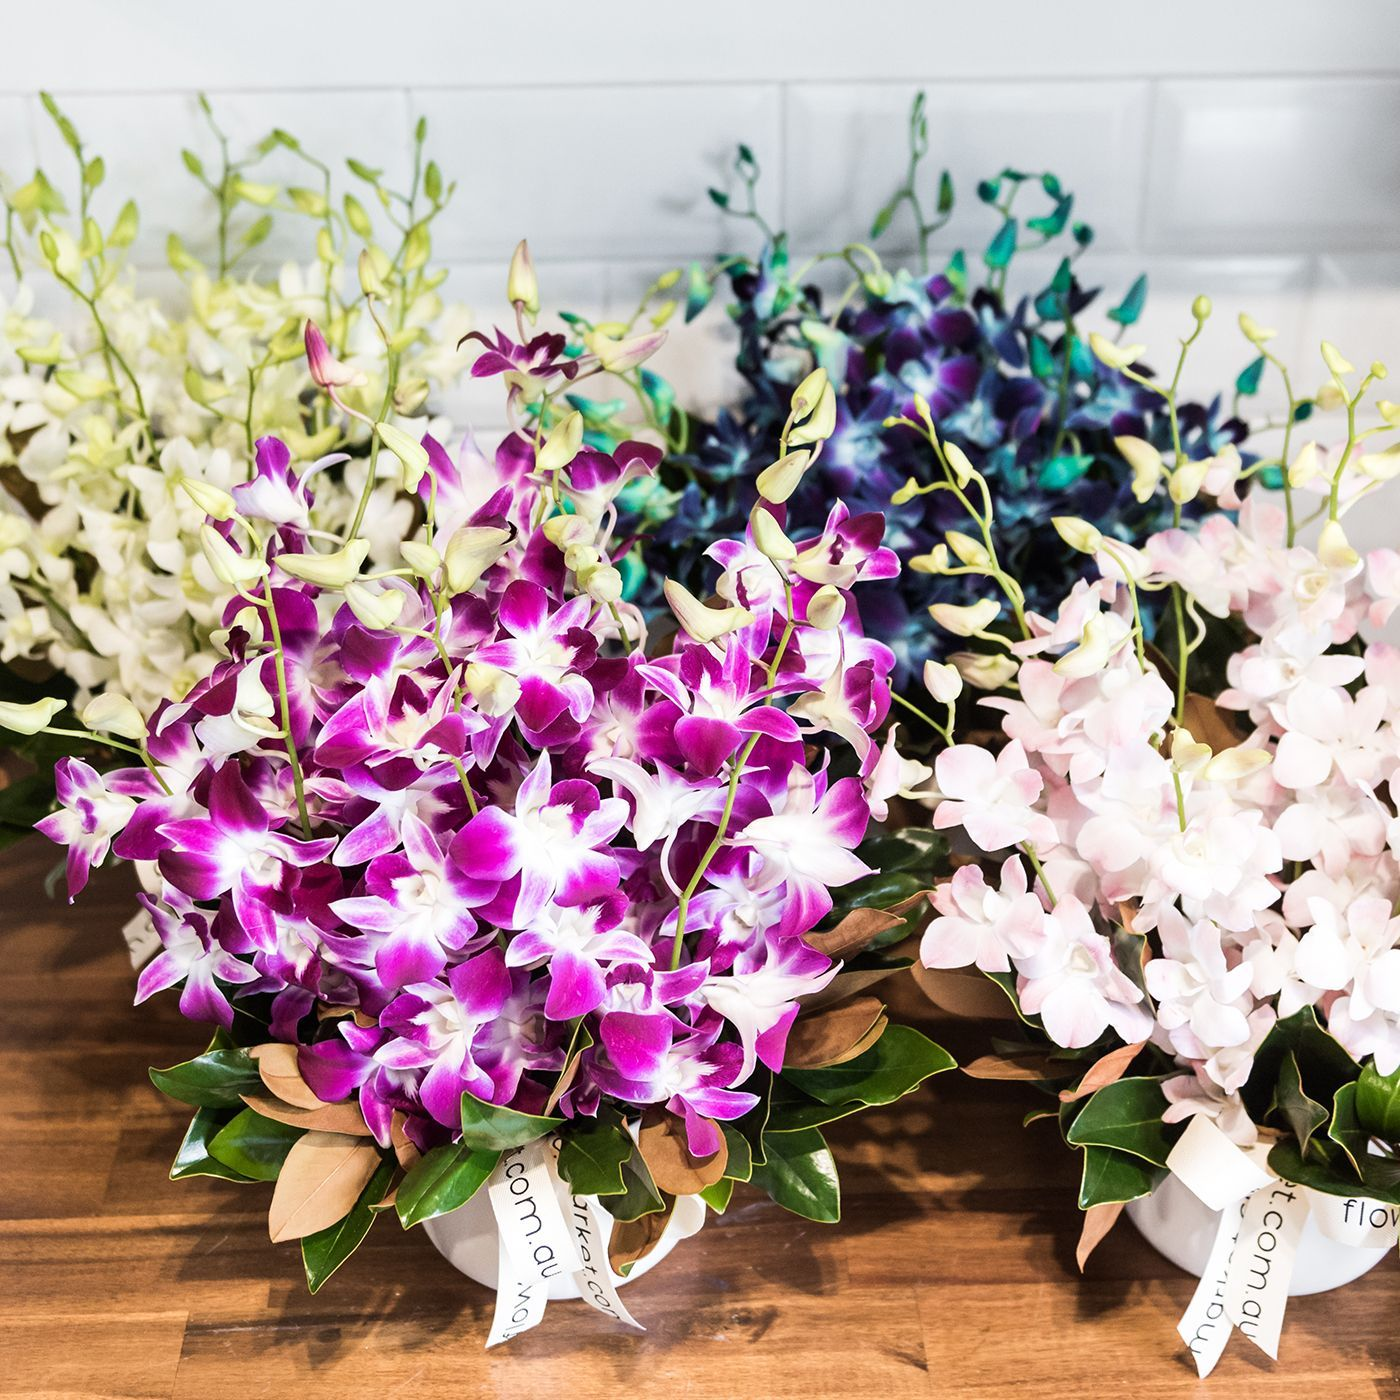 Our popular Singapore orchid arrangements are on sale on